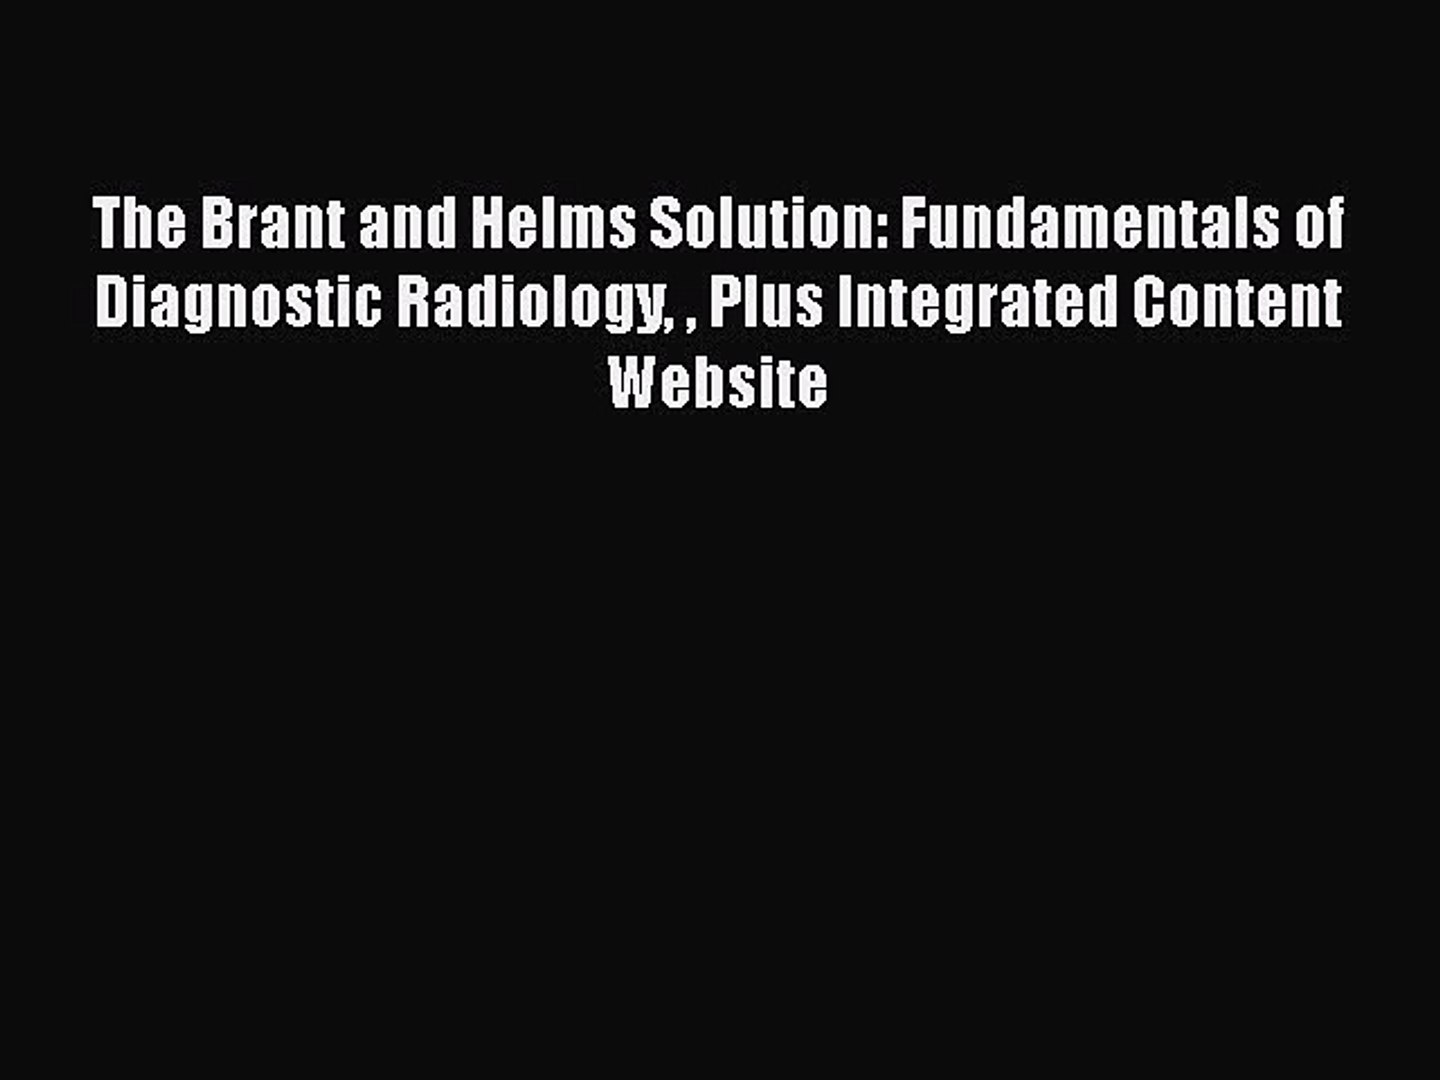 Read The Brant and Helms Solution: Fundamentals of Diagnostic Radiology  Plus Integrated Content